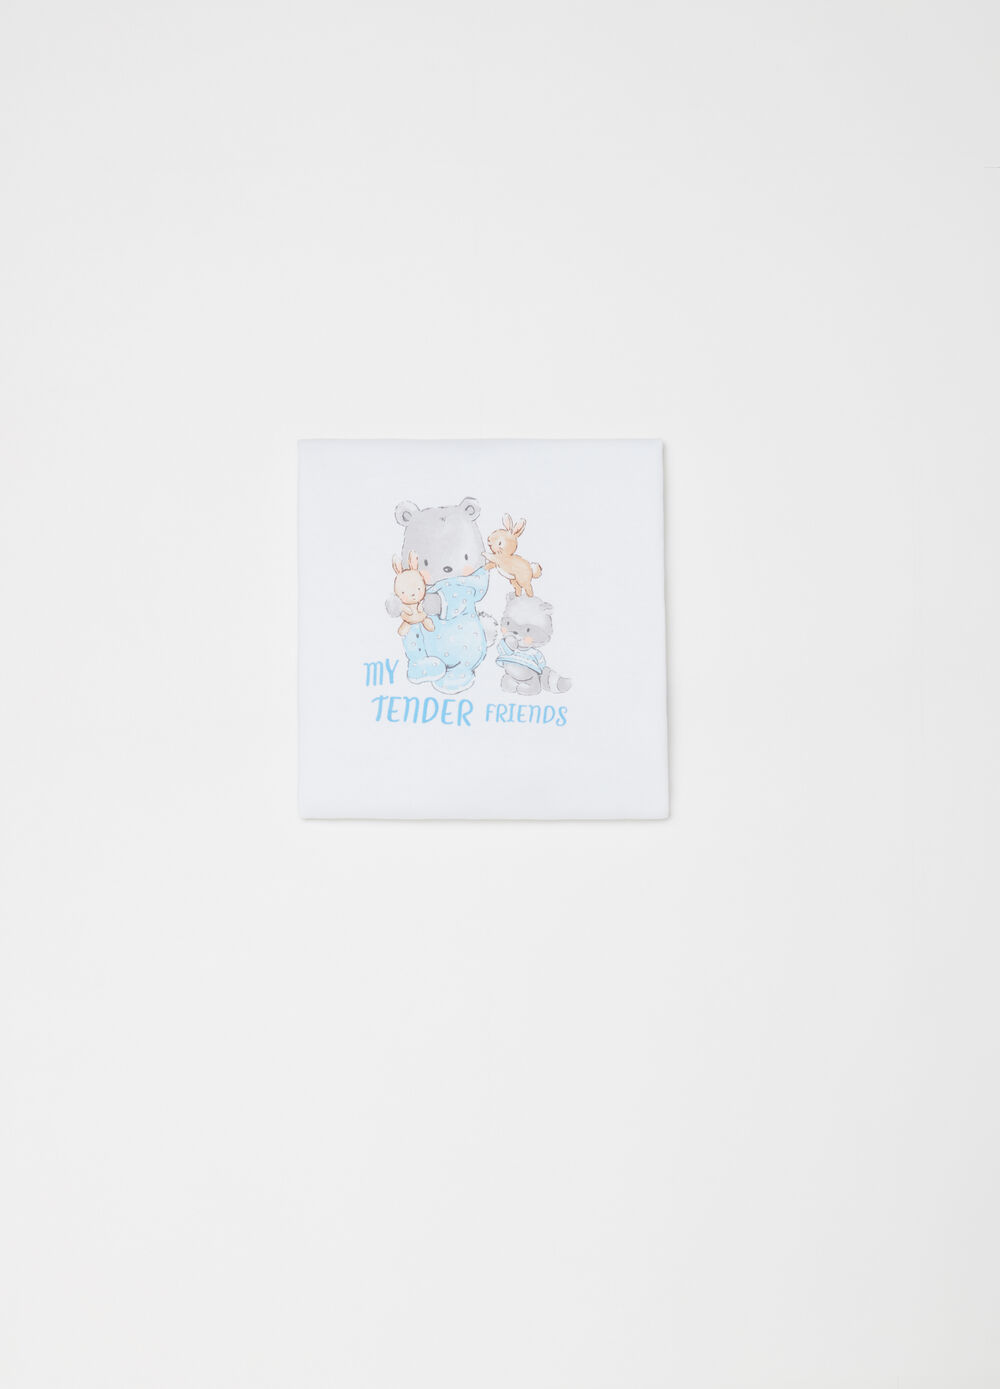 100% cotton blanket with cute print